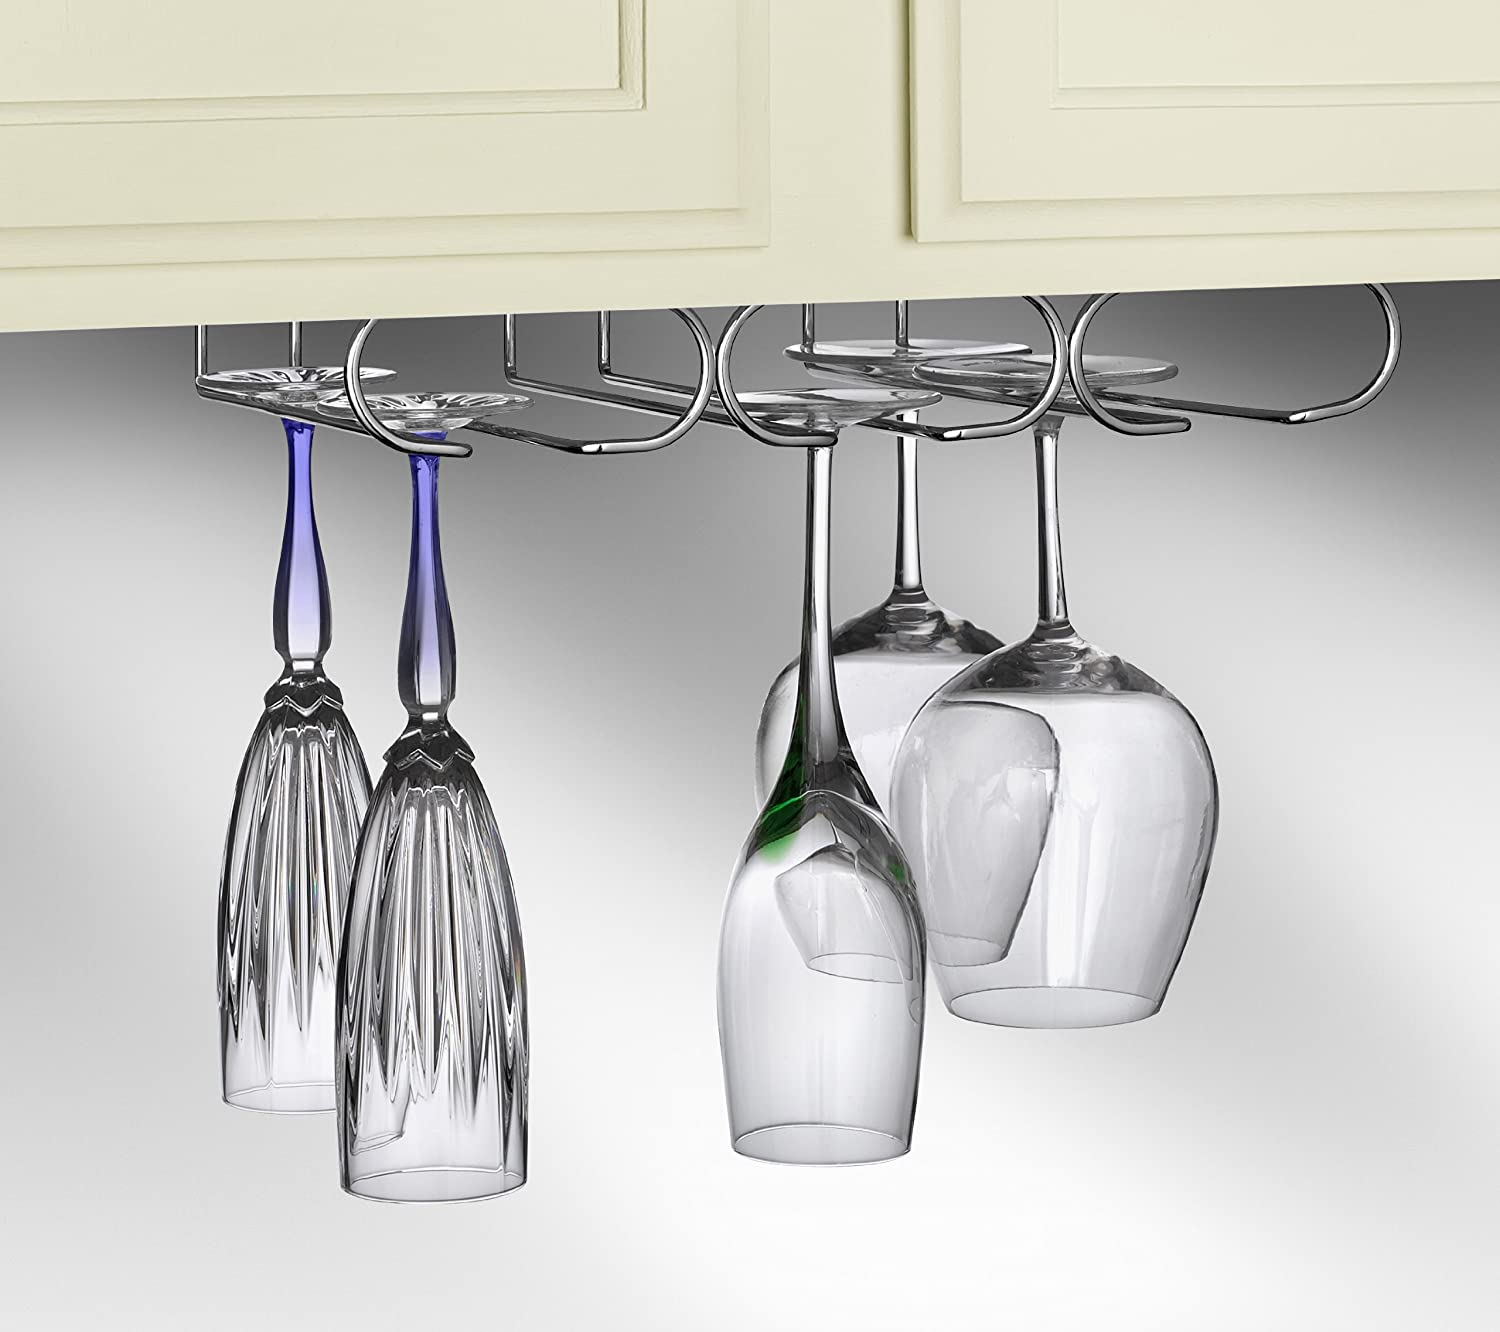 Amazon Spectrum Diversified Under Cabinet Wine Glass Rack and